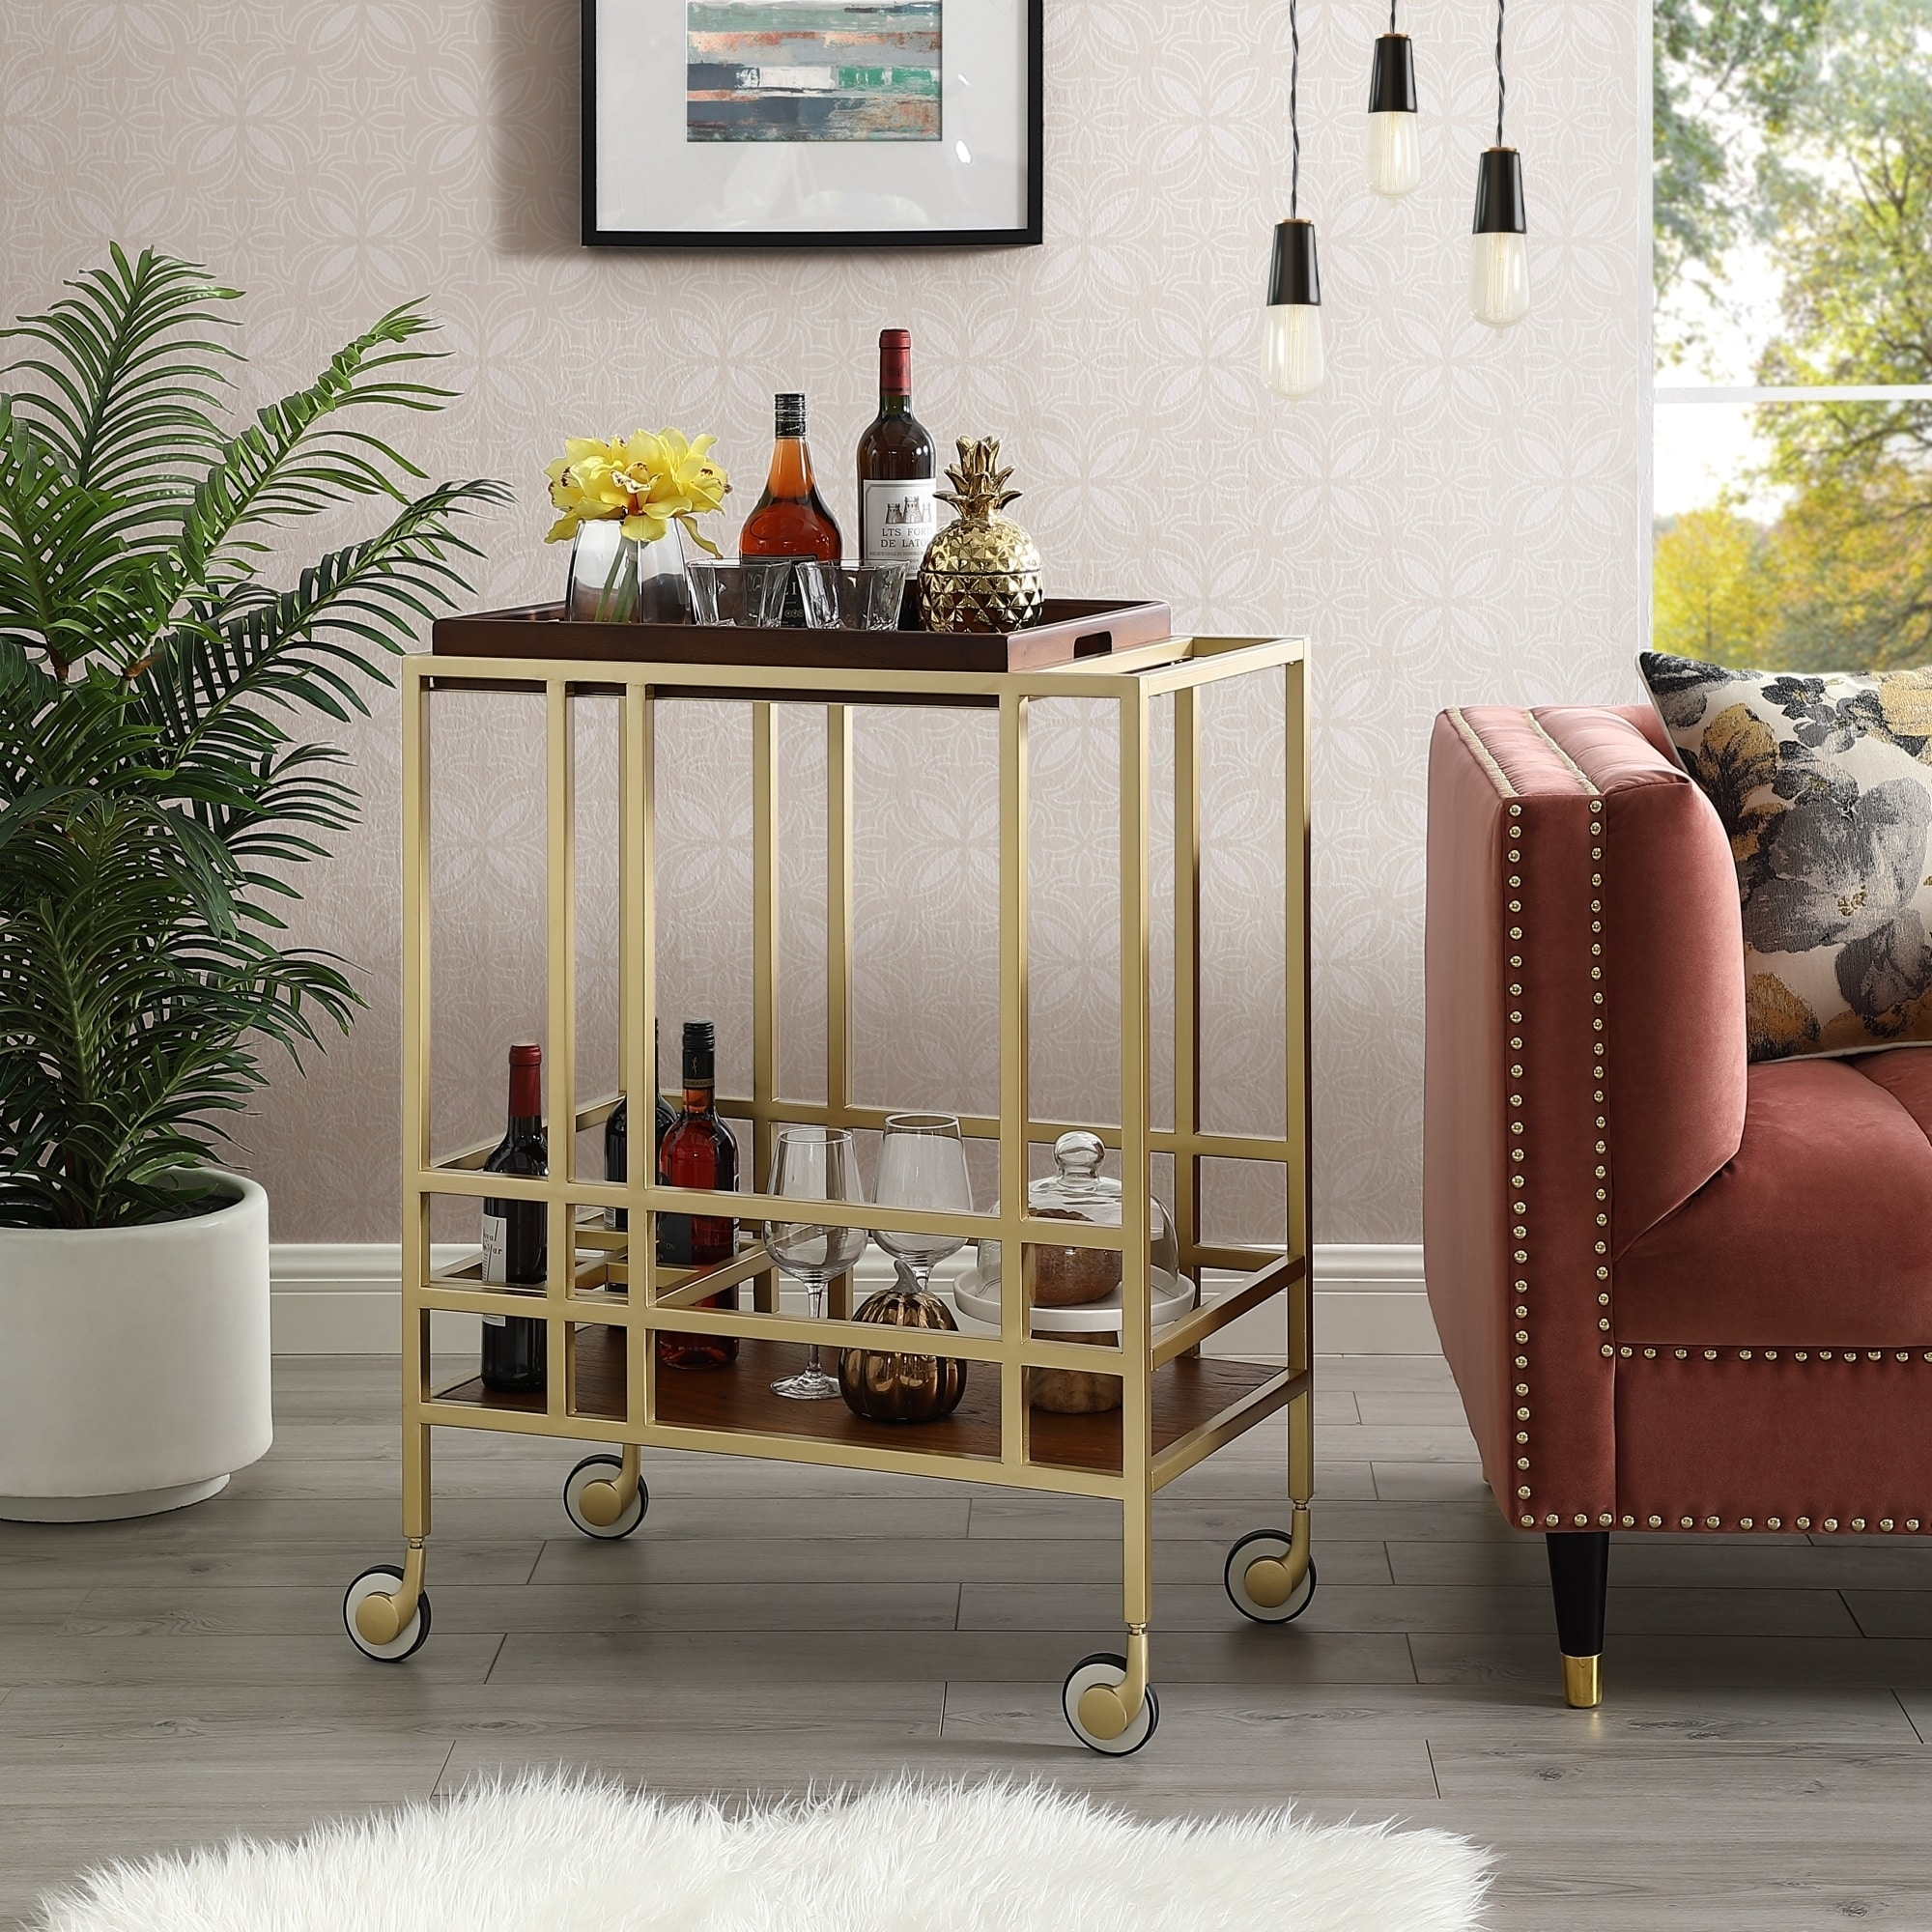 Ronald Serving Bar Cart Removable Tray Wine Bottle Storage Casters N A On Sale Overstock 27750946